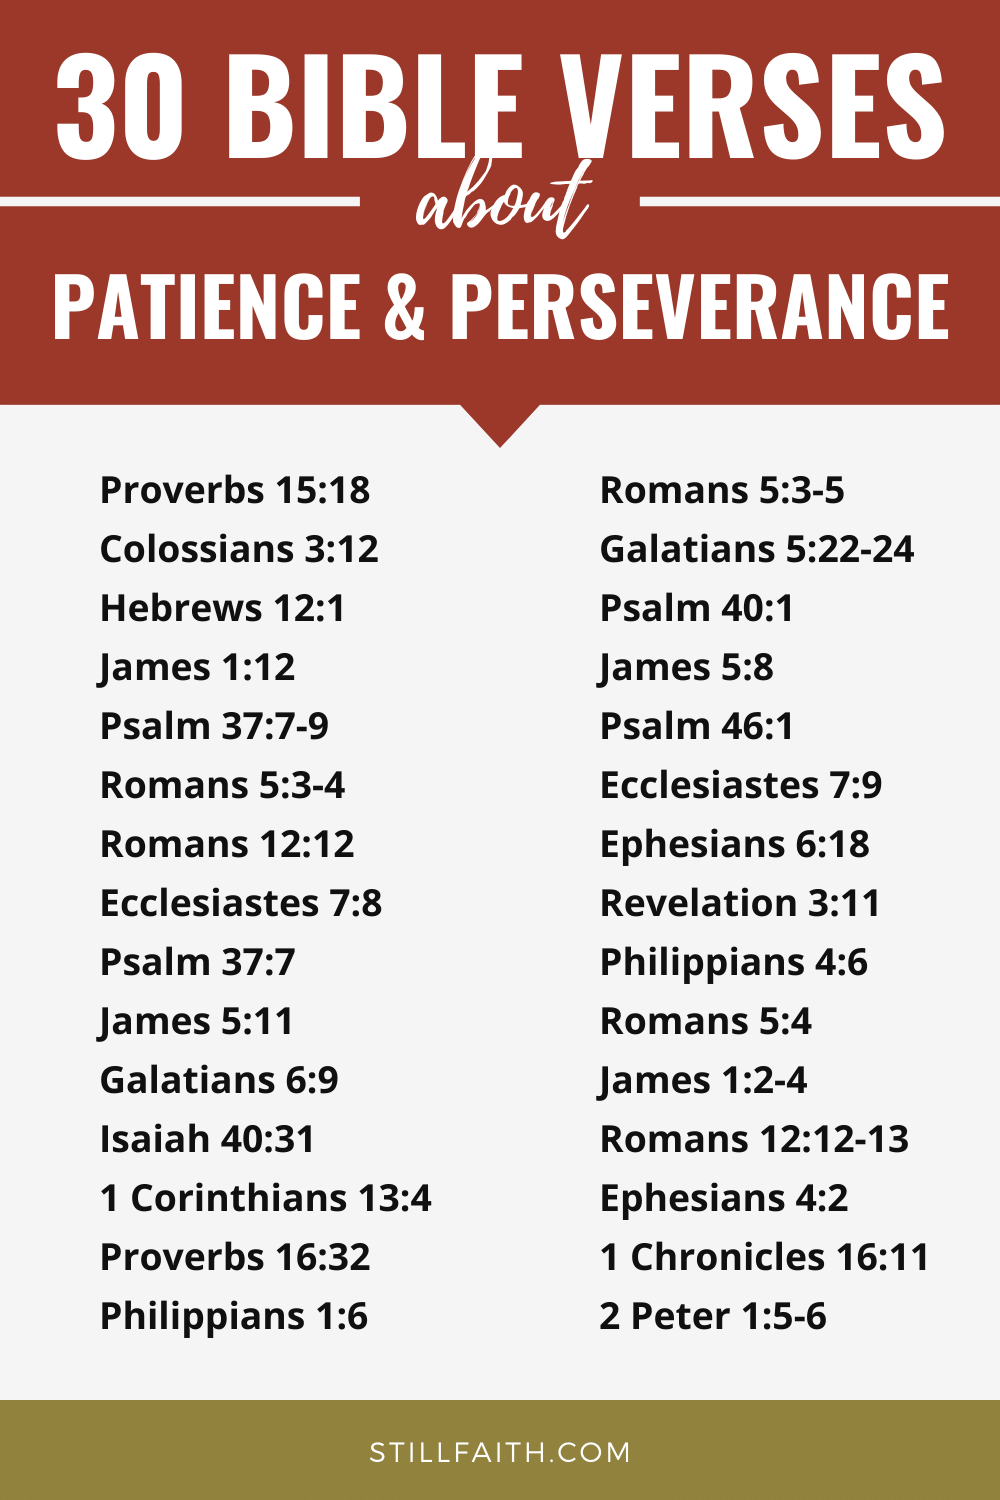 152 Bible Verses about Patience and Perseverance